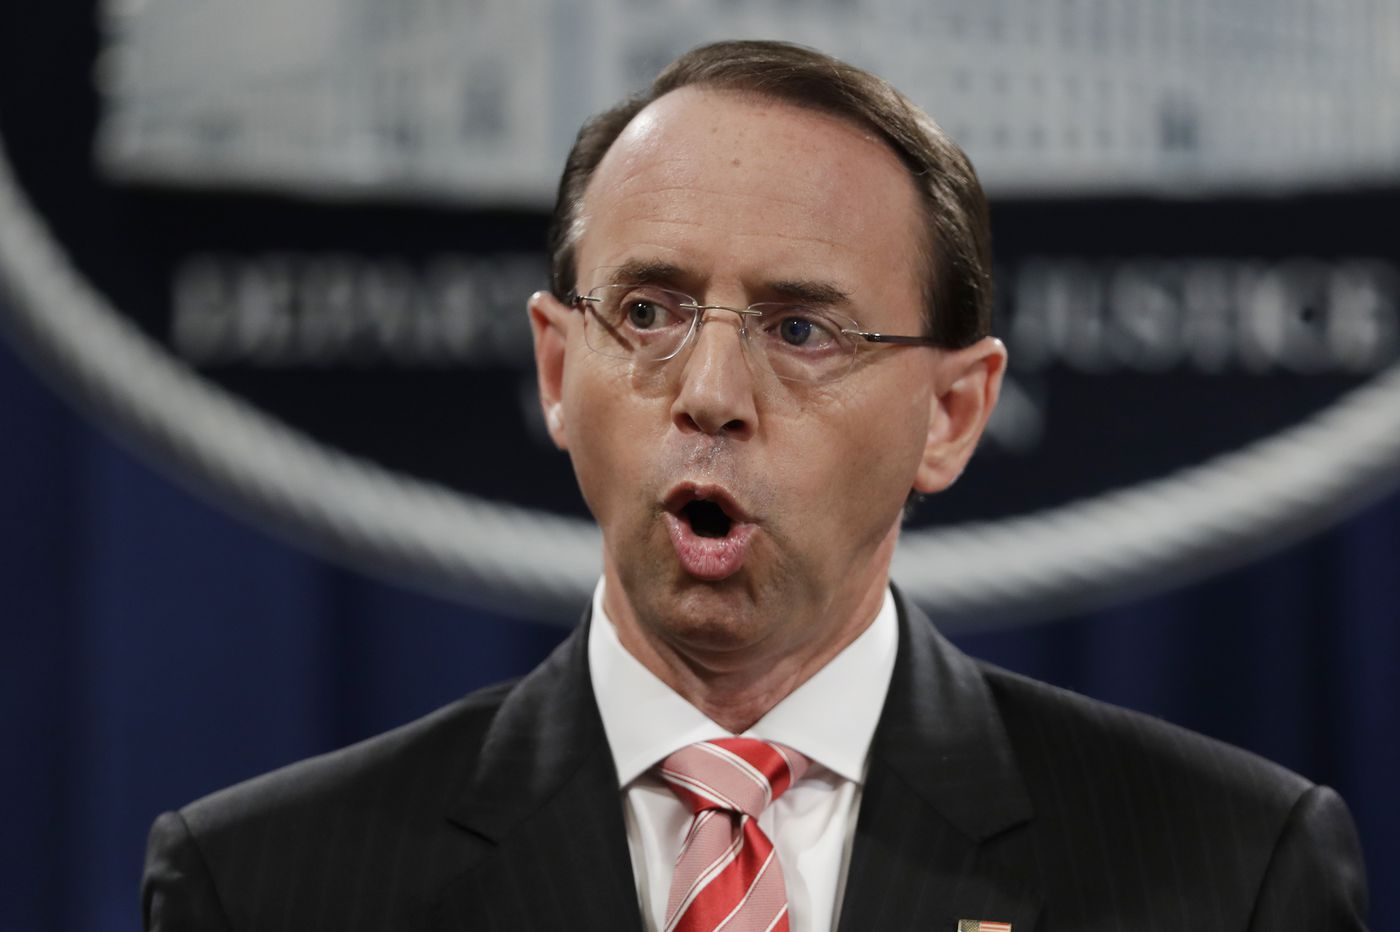 Rod Rosenstein set to leave U.S. Justice Department